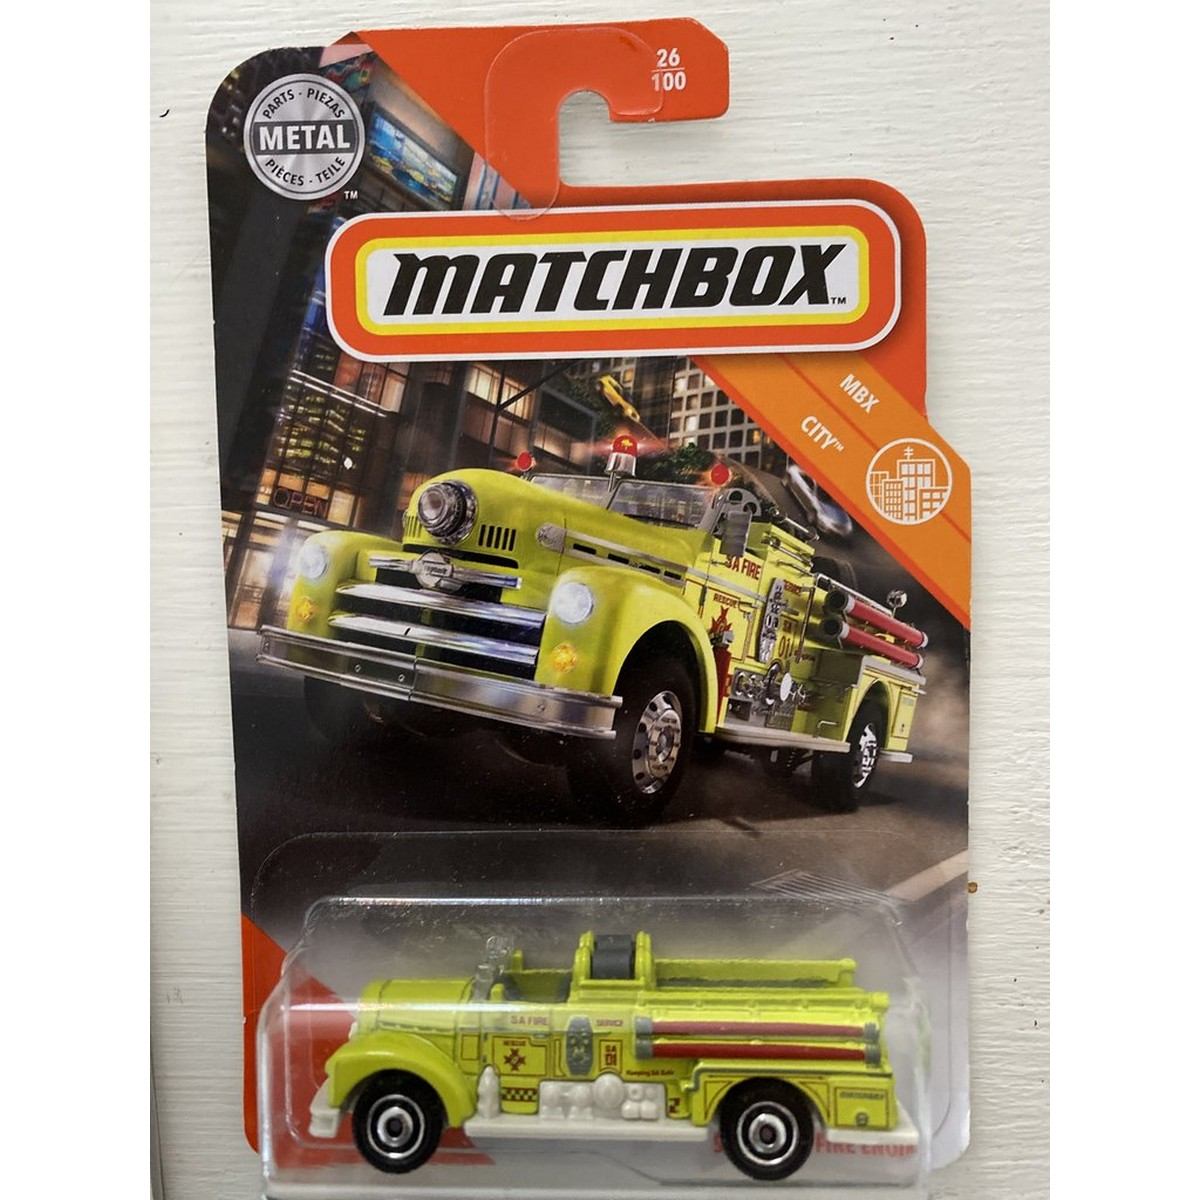 Matchbox Seagrave Fire Engine  - 1/64 scale diecast model